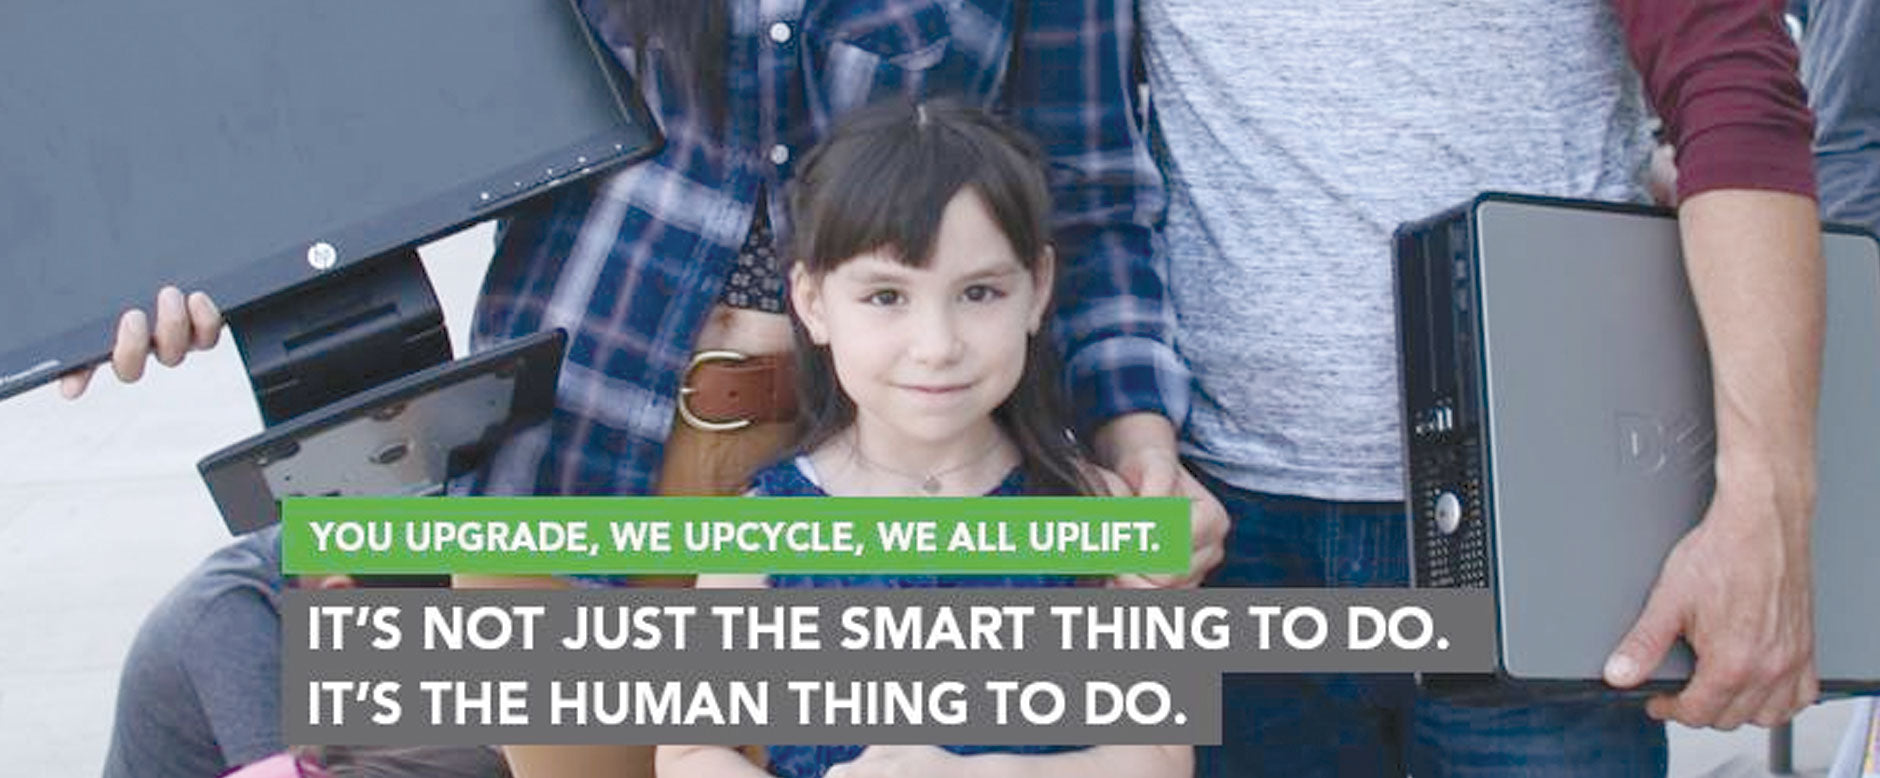 Upcyling electronics. Human IT. Donate Bitcoin